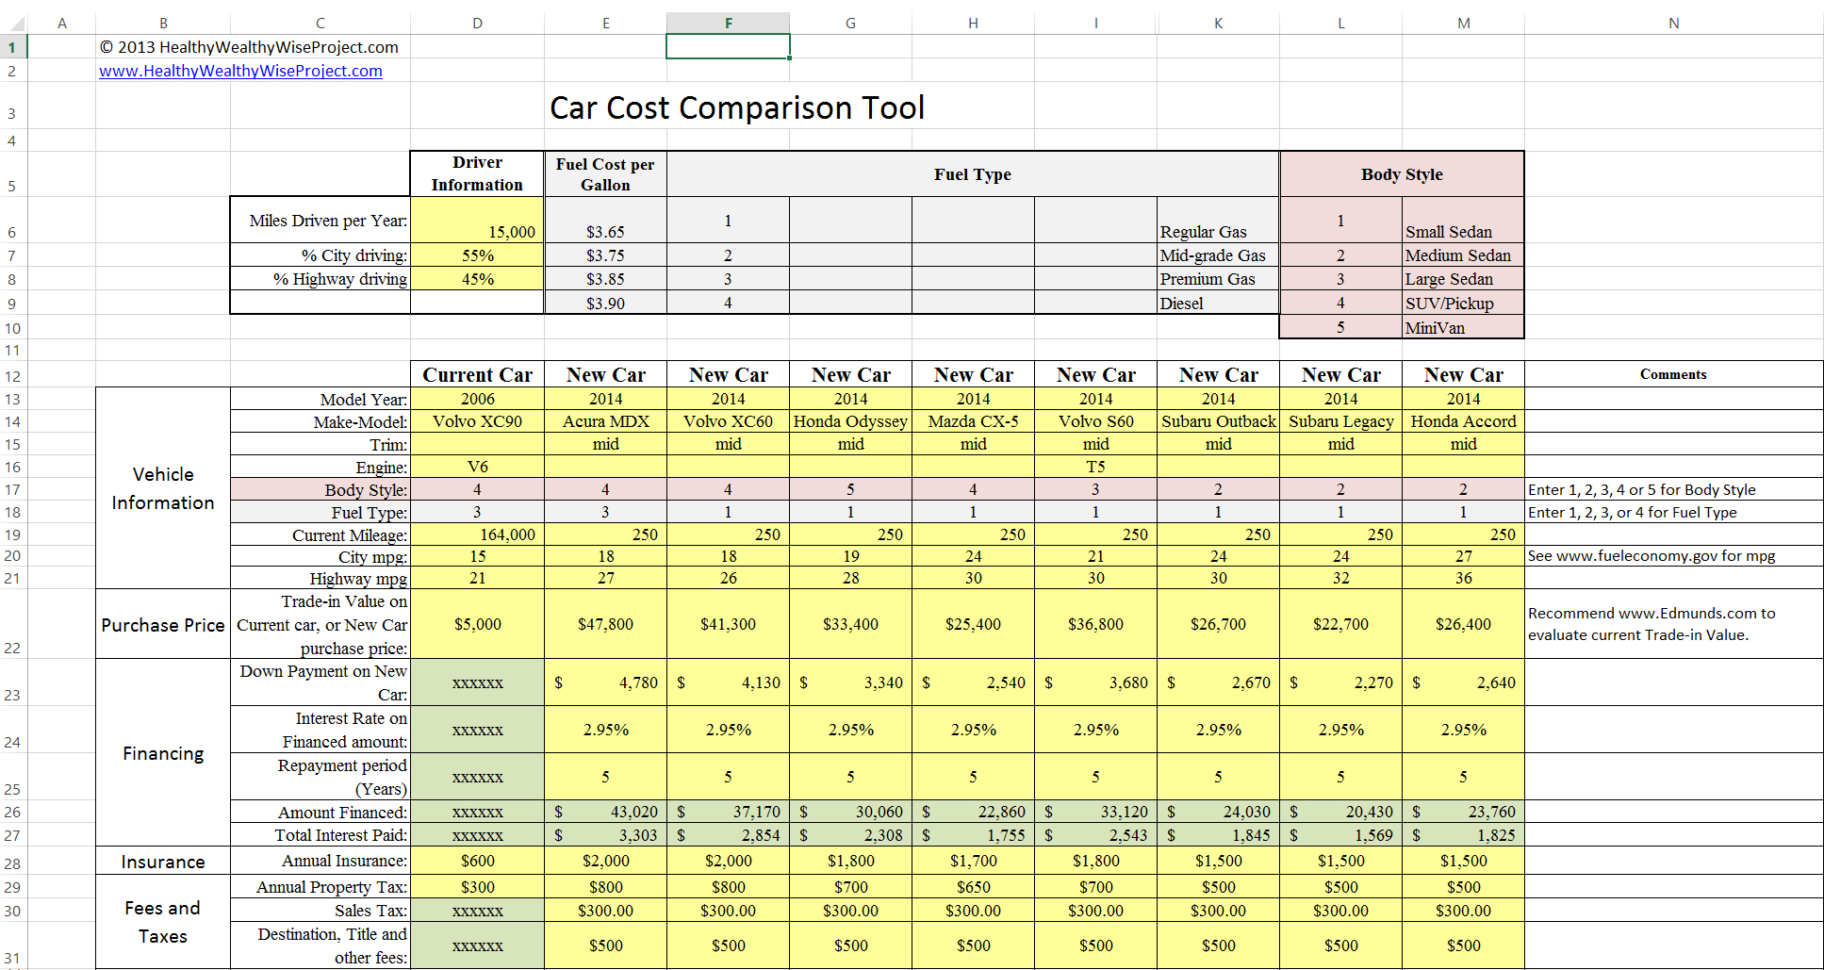 Rent Vs Sell Spreadsheet Within Car Cost Comparison Tool For Excel